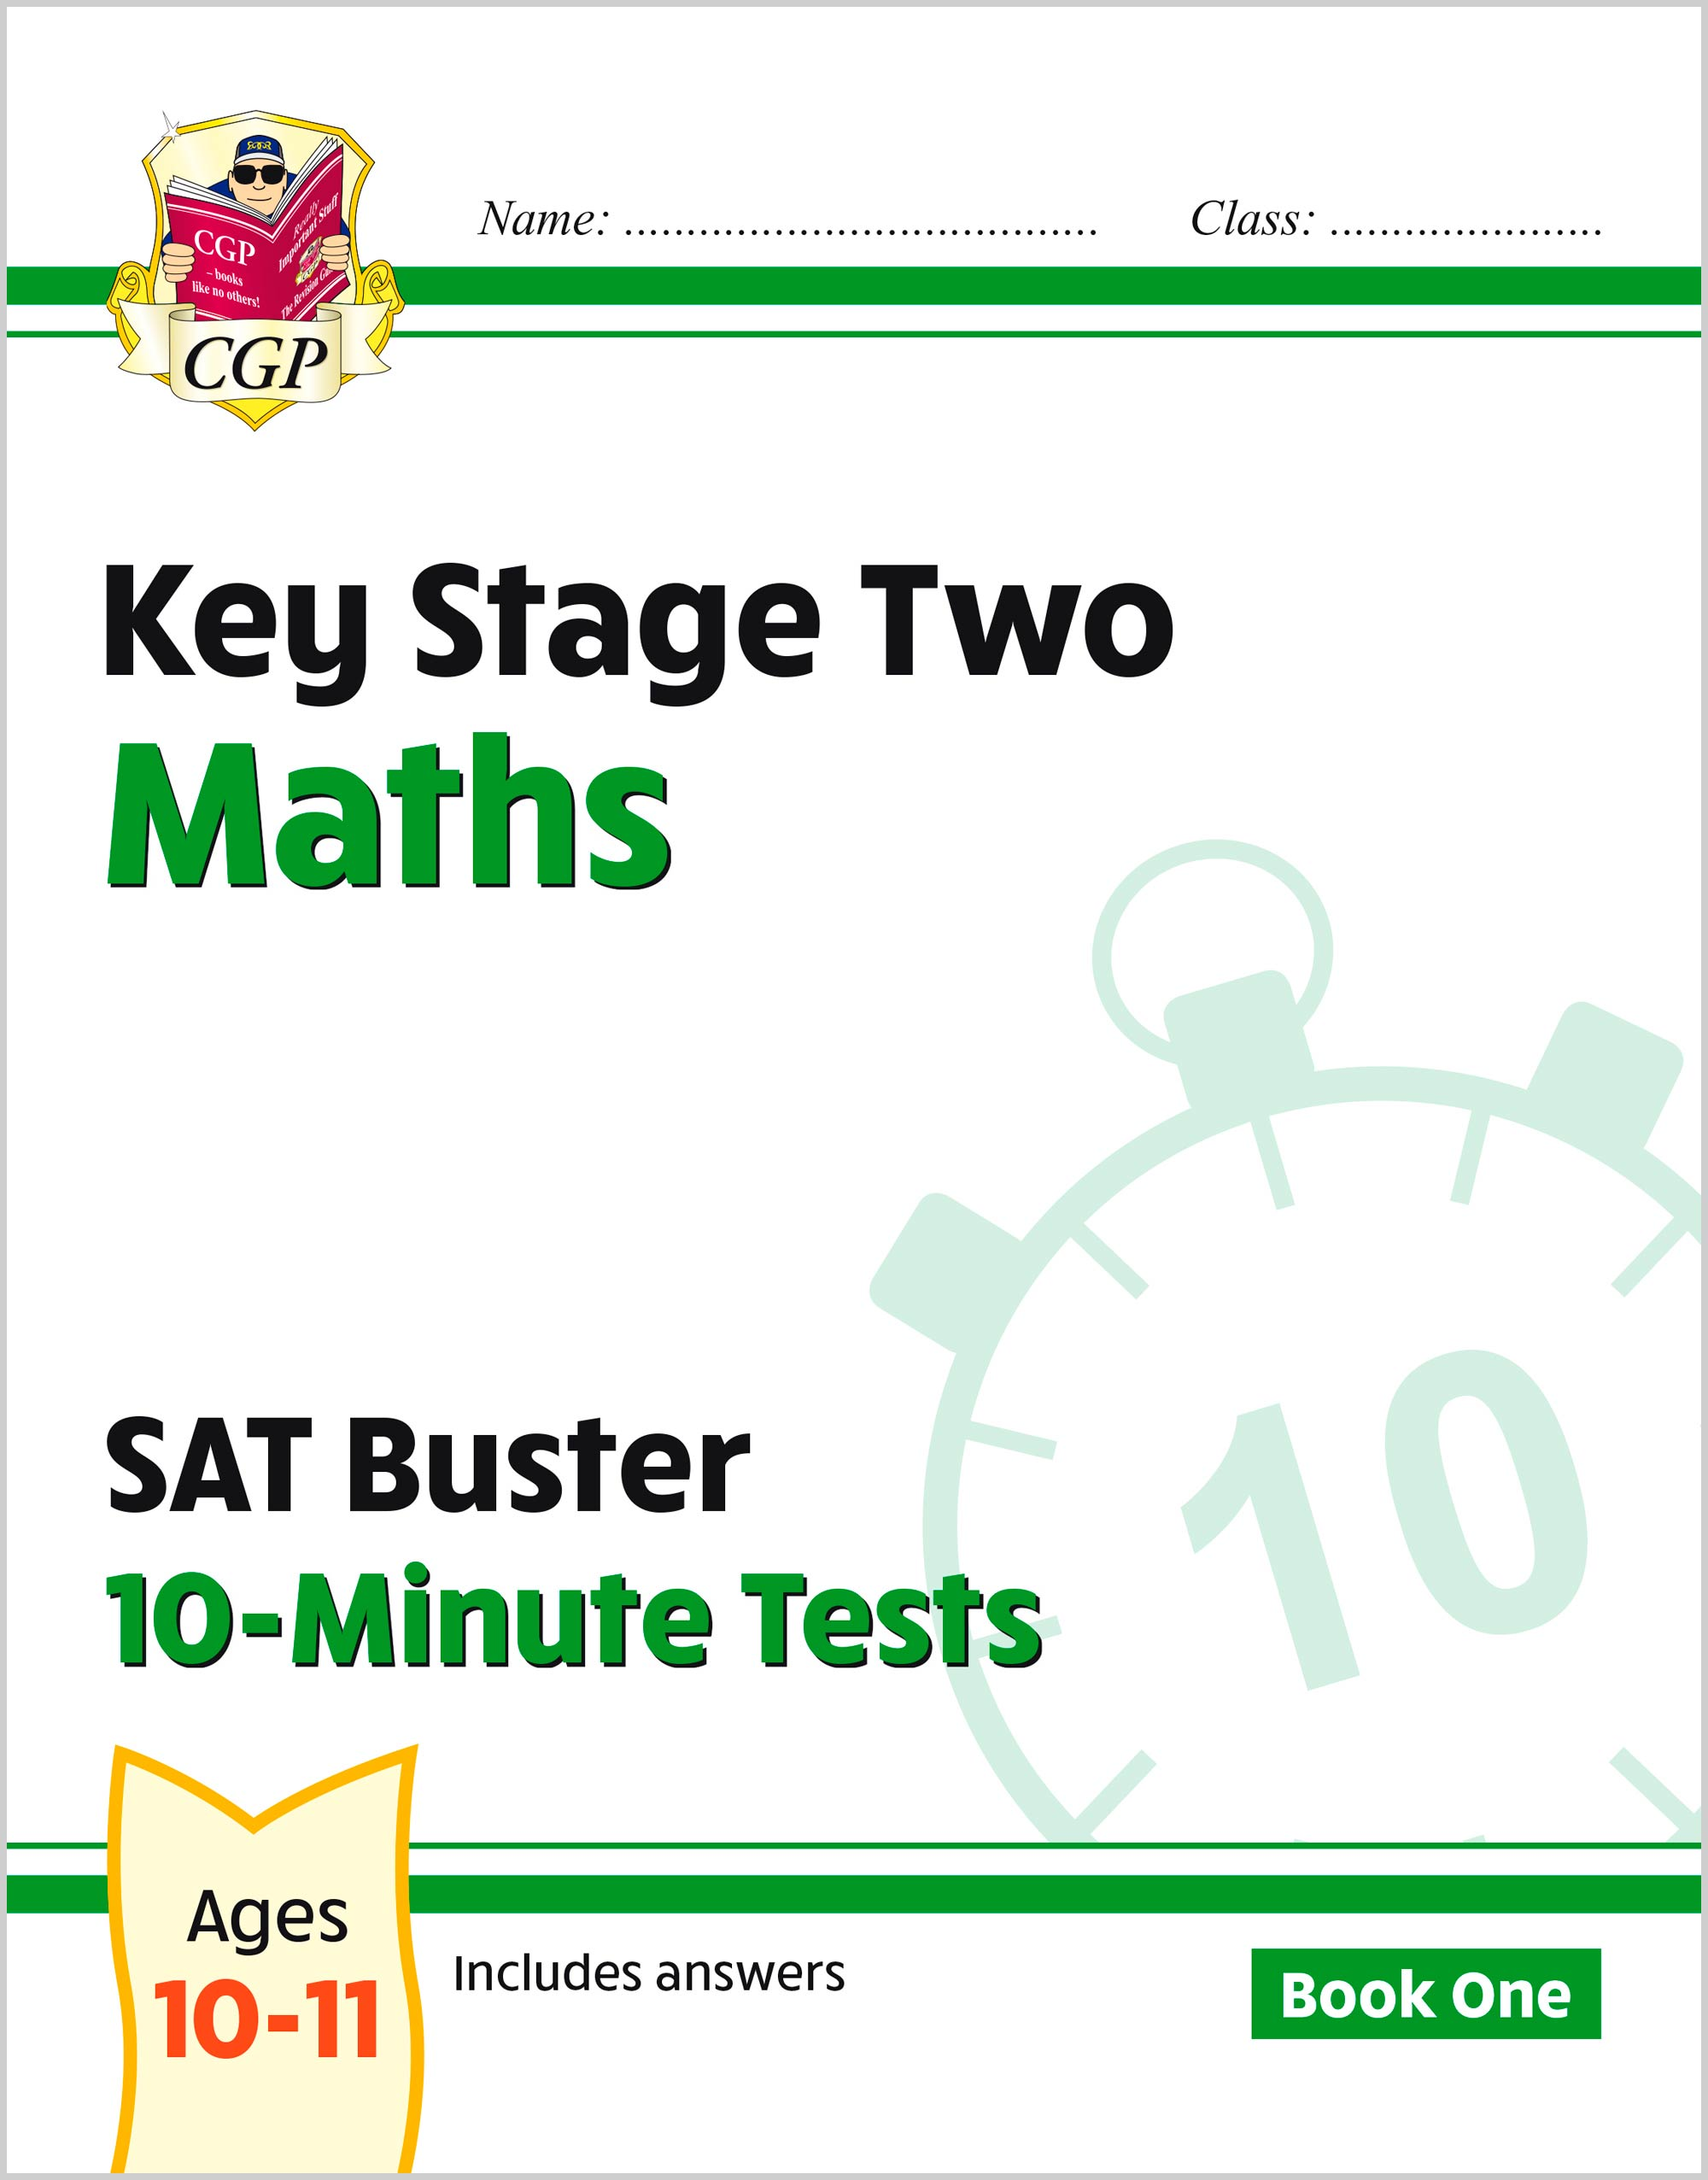 MXP23 - New KS2 Maths SAT Buster 10-Minute Tests - Book 1